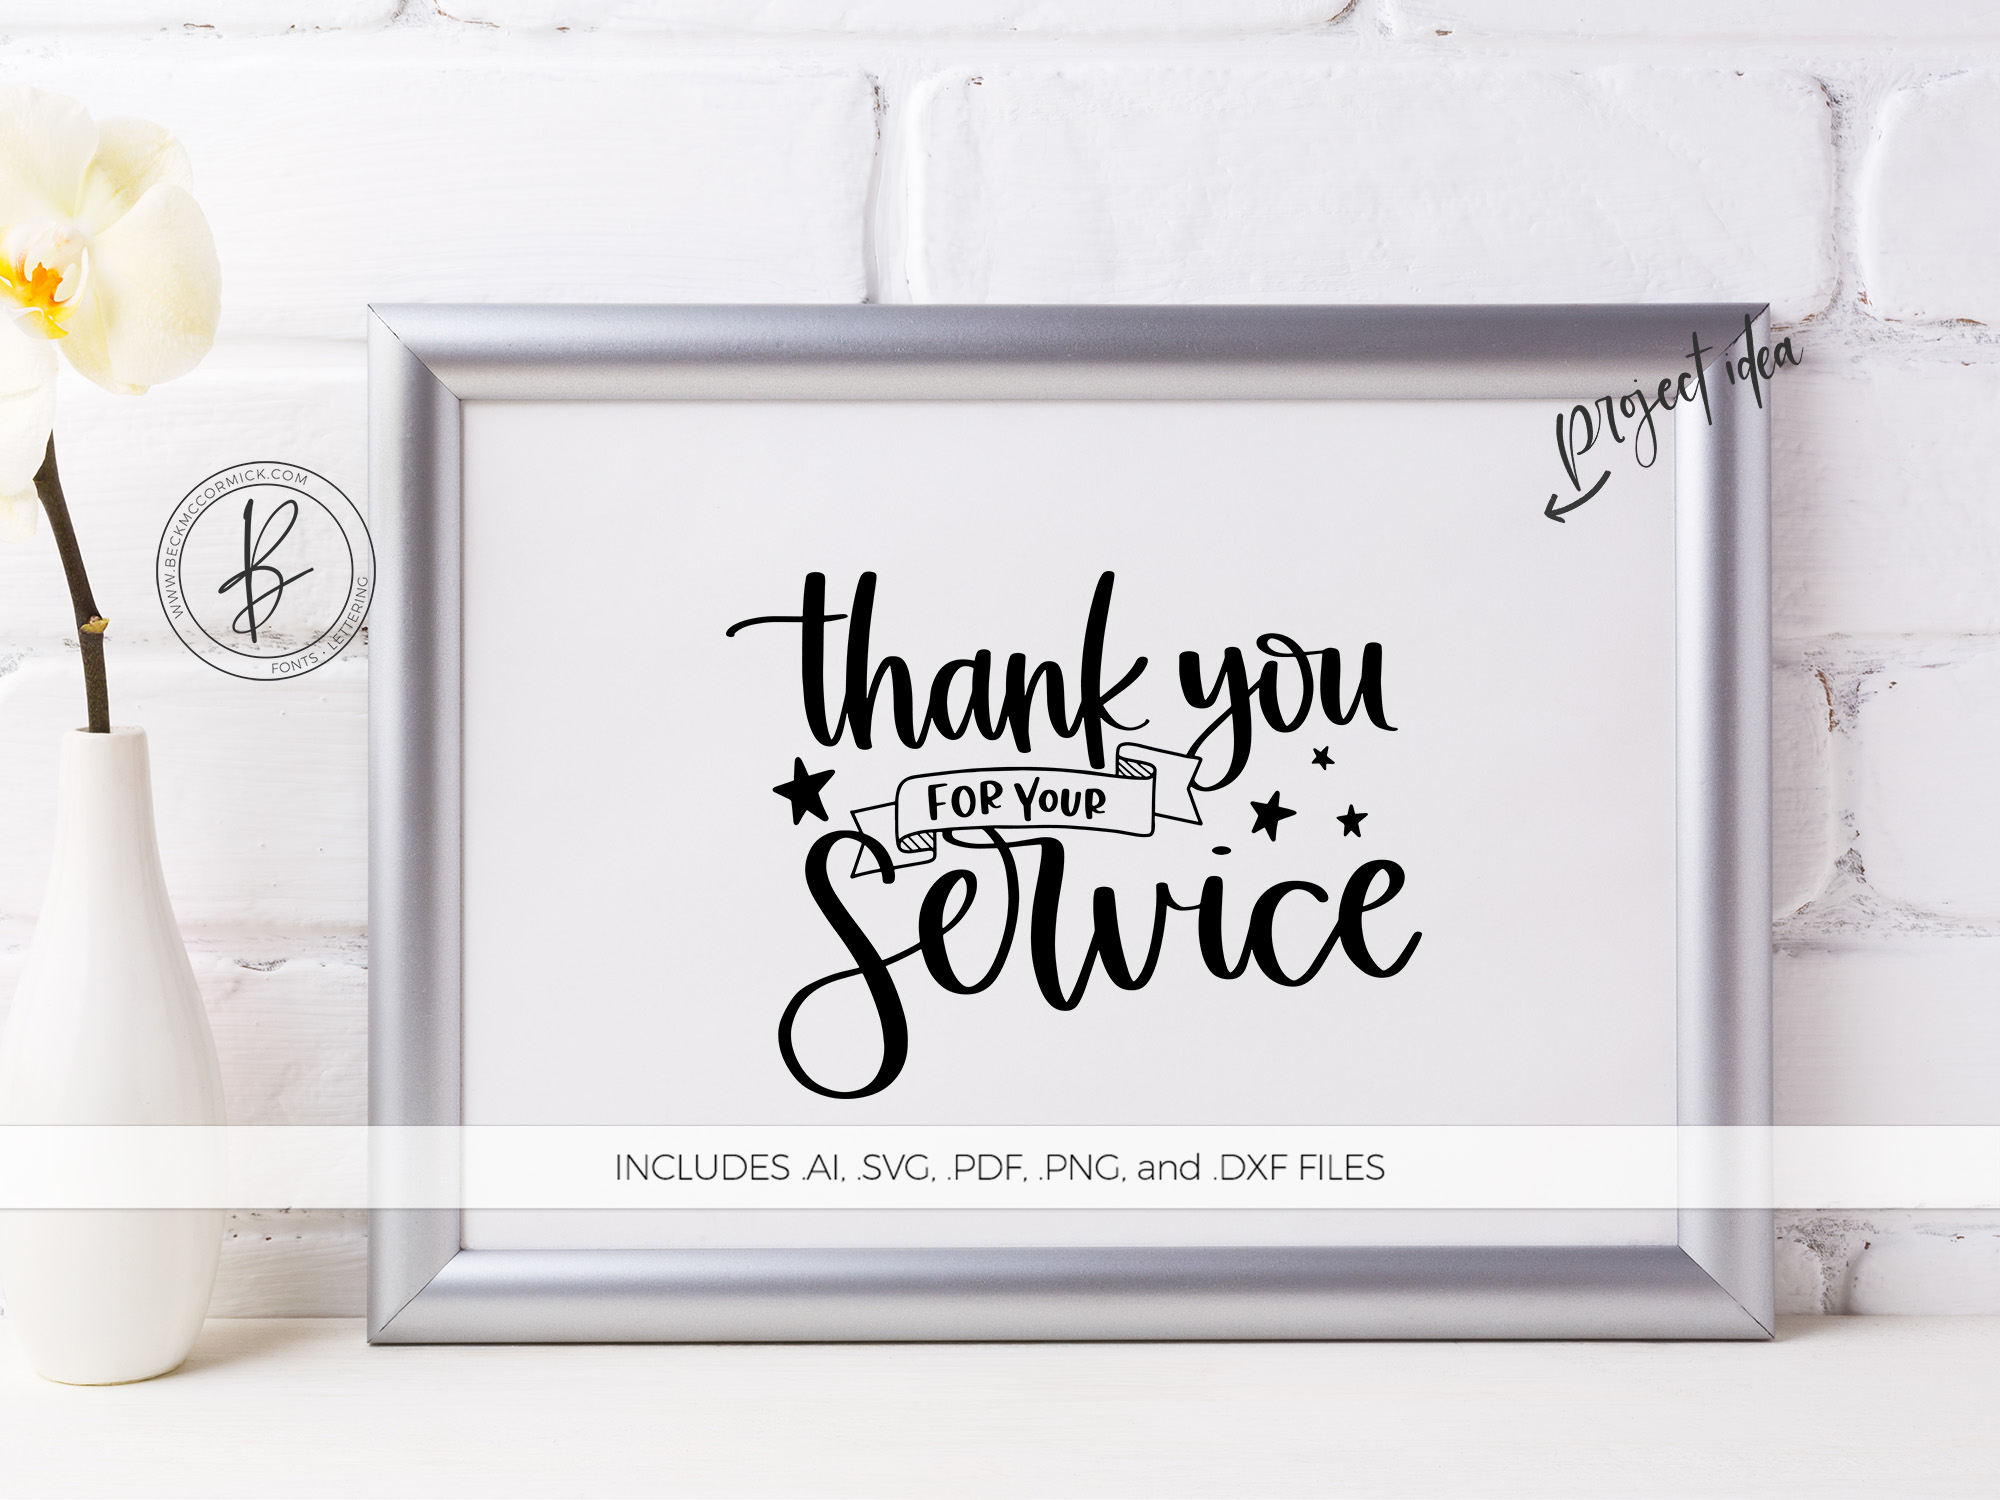 Download Free Thank You For Your Service Graphic By Beckmccormick Creative for Cricut Explore, Silhouette and other cutting machines.